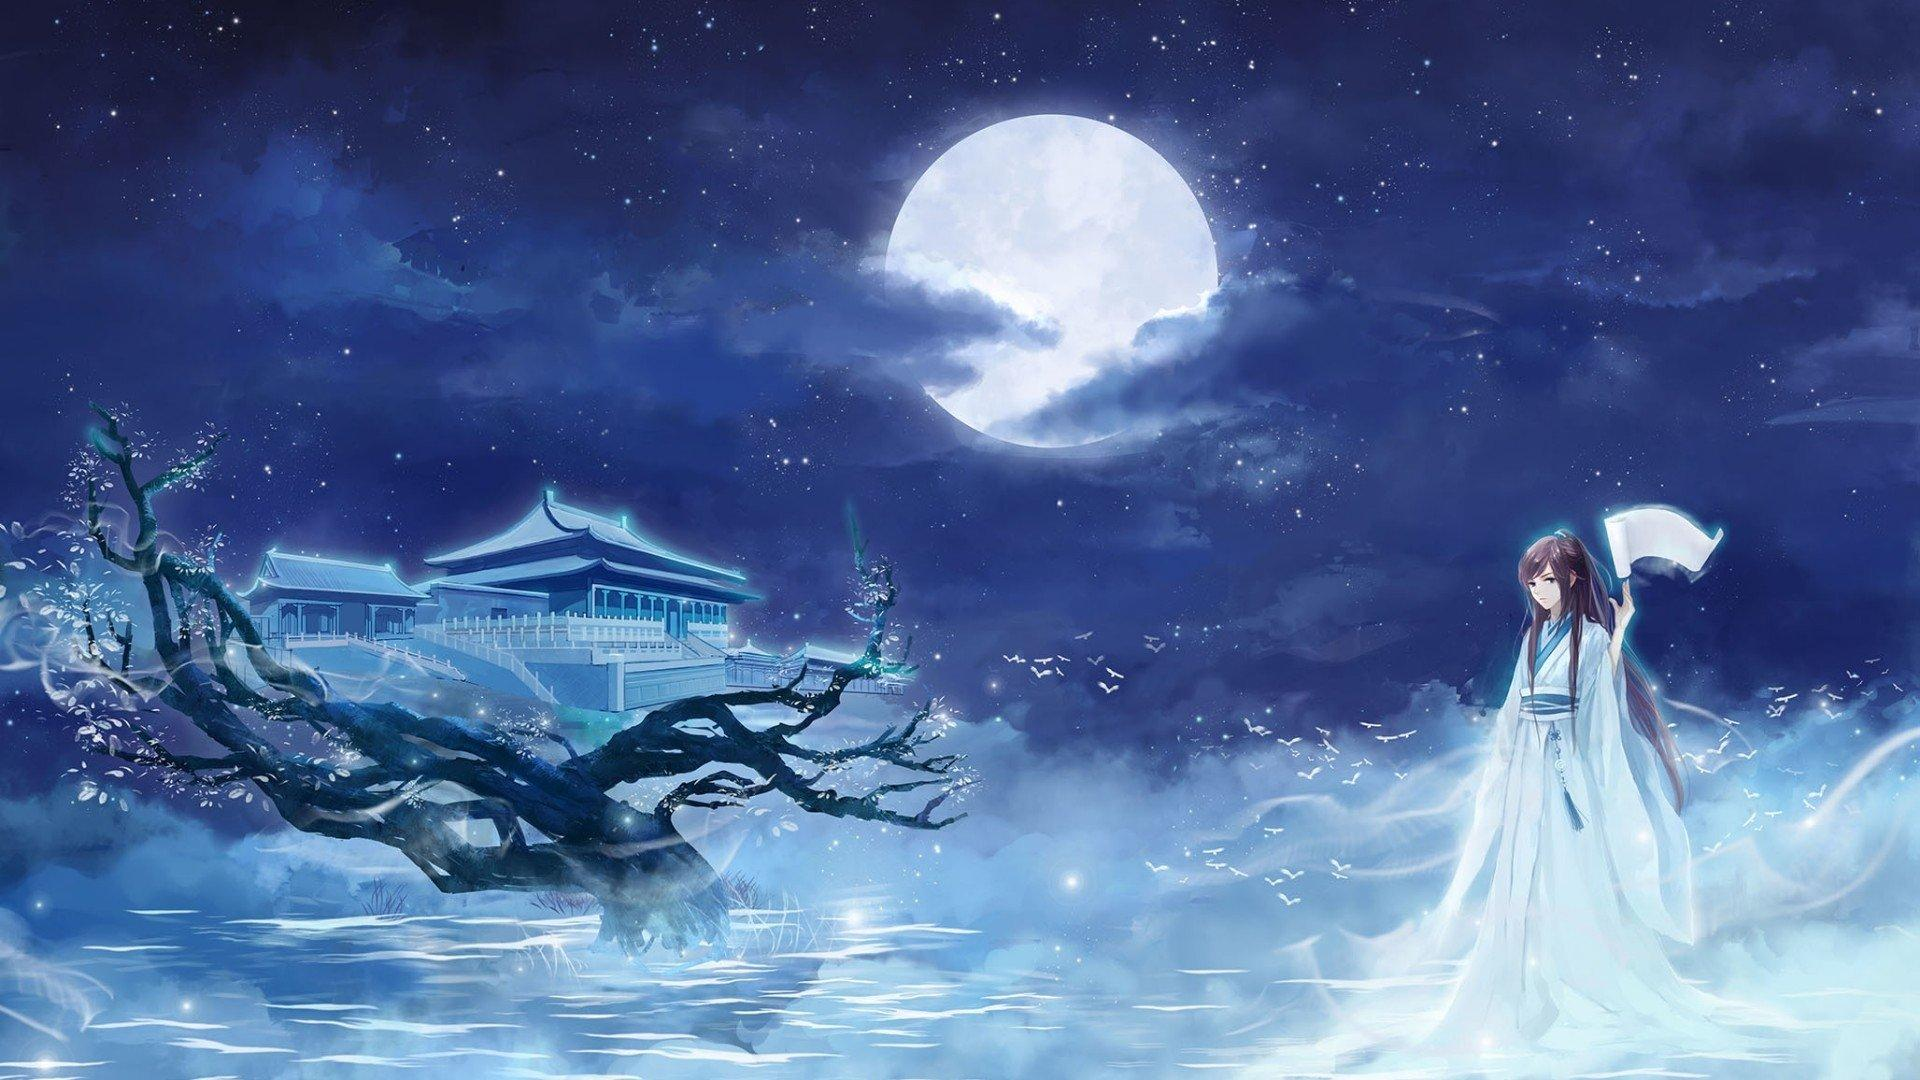 Anime Girl And The Moon Wallpapers - Wallpaper Cave